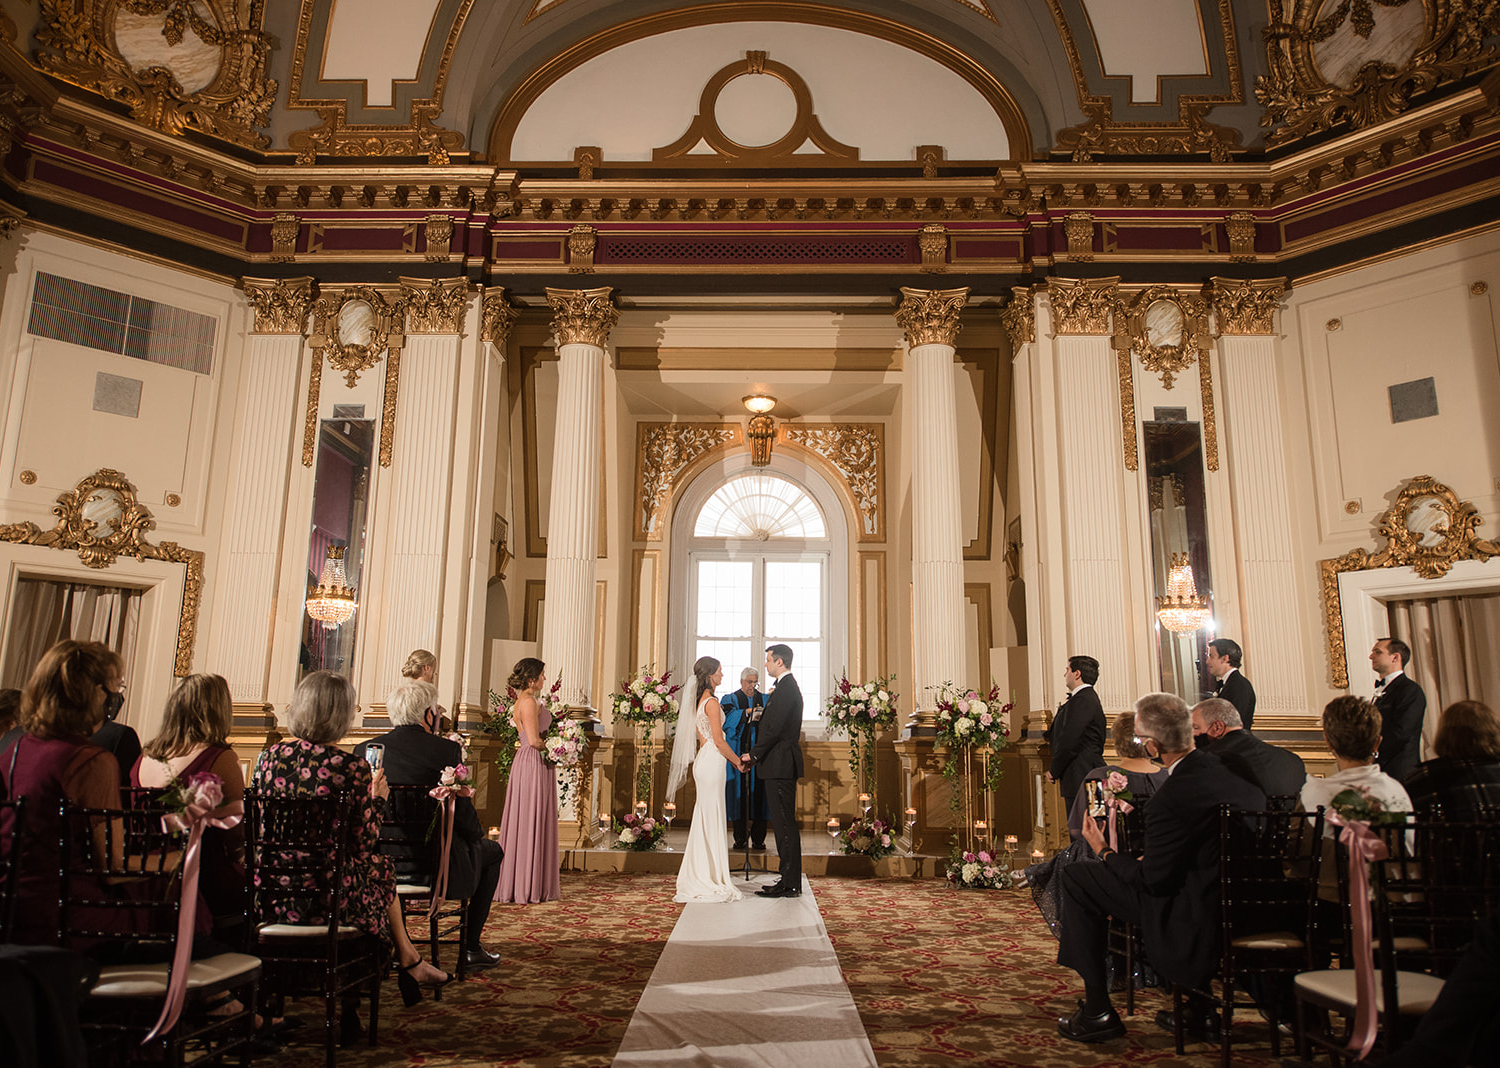 bride and groom during their wedding ceremony at the Belvedere Hotel